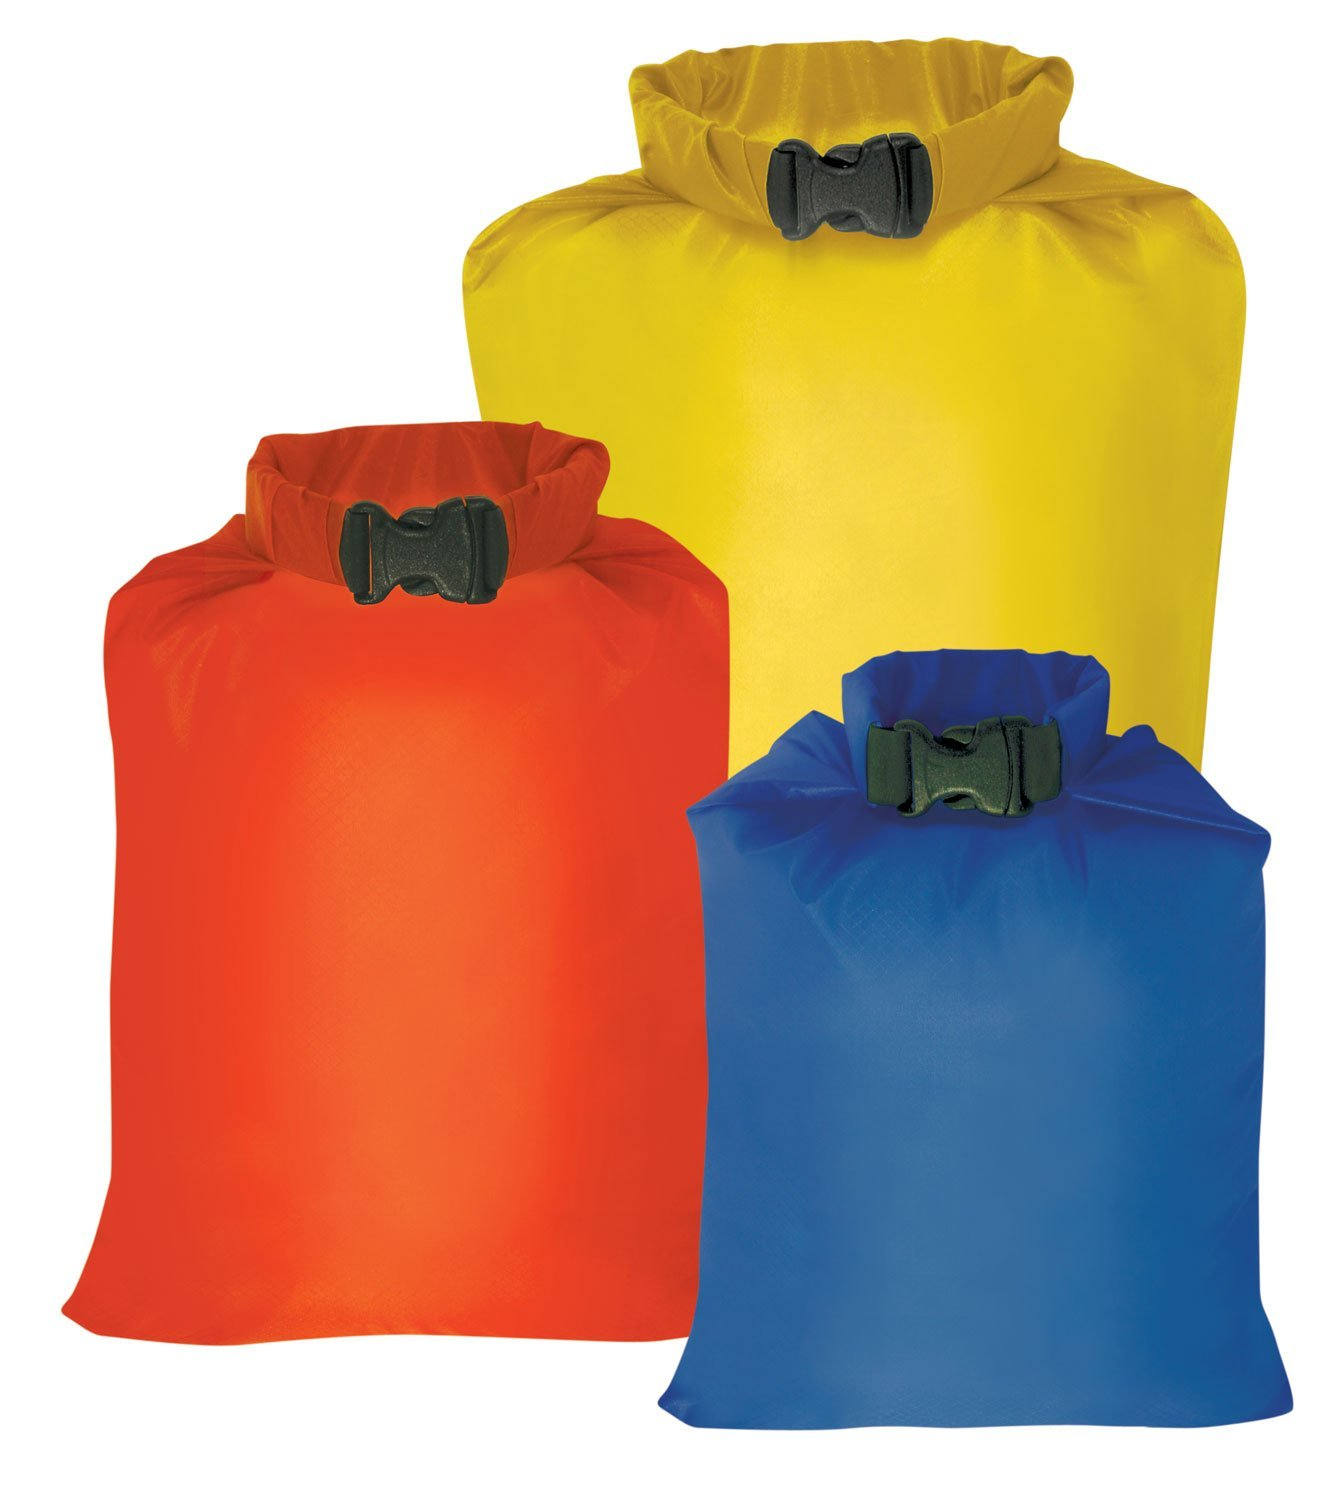 Dry Sack - 3 Pack Set Image